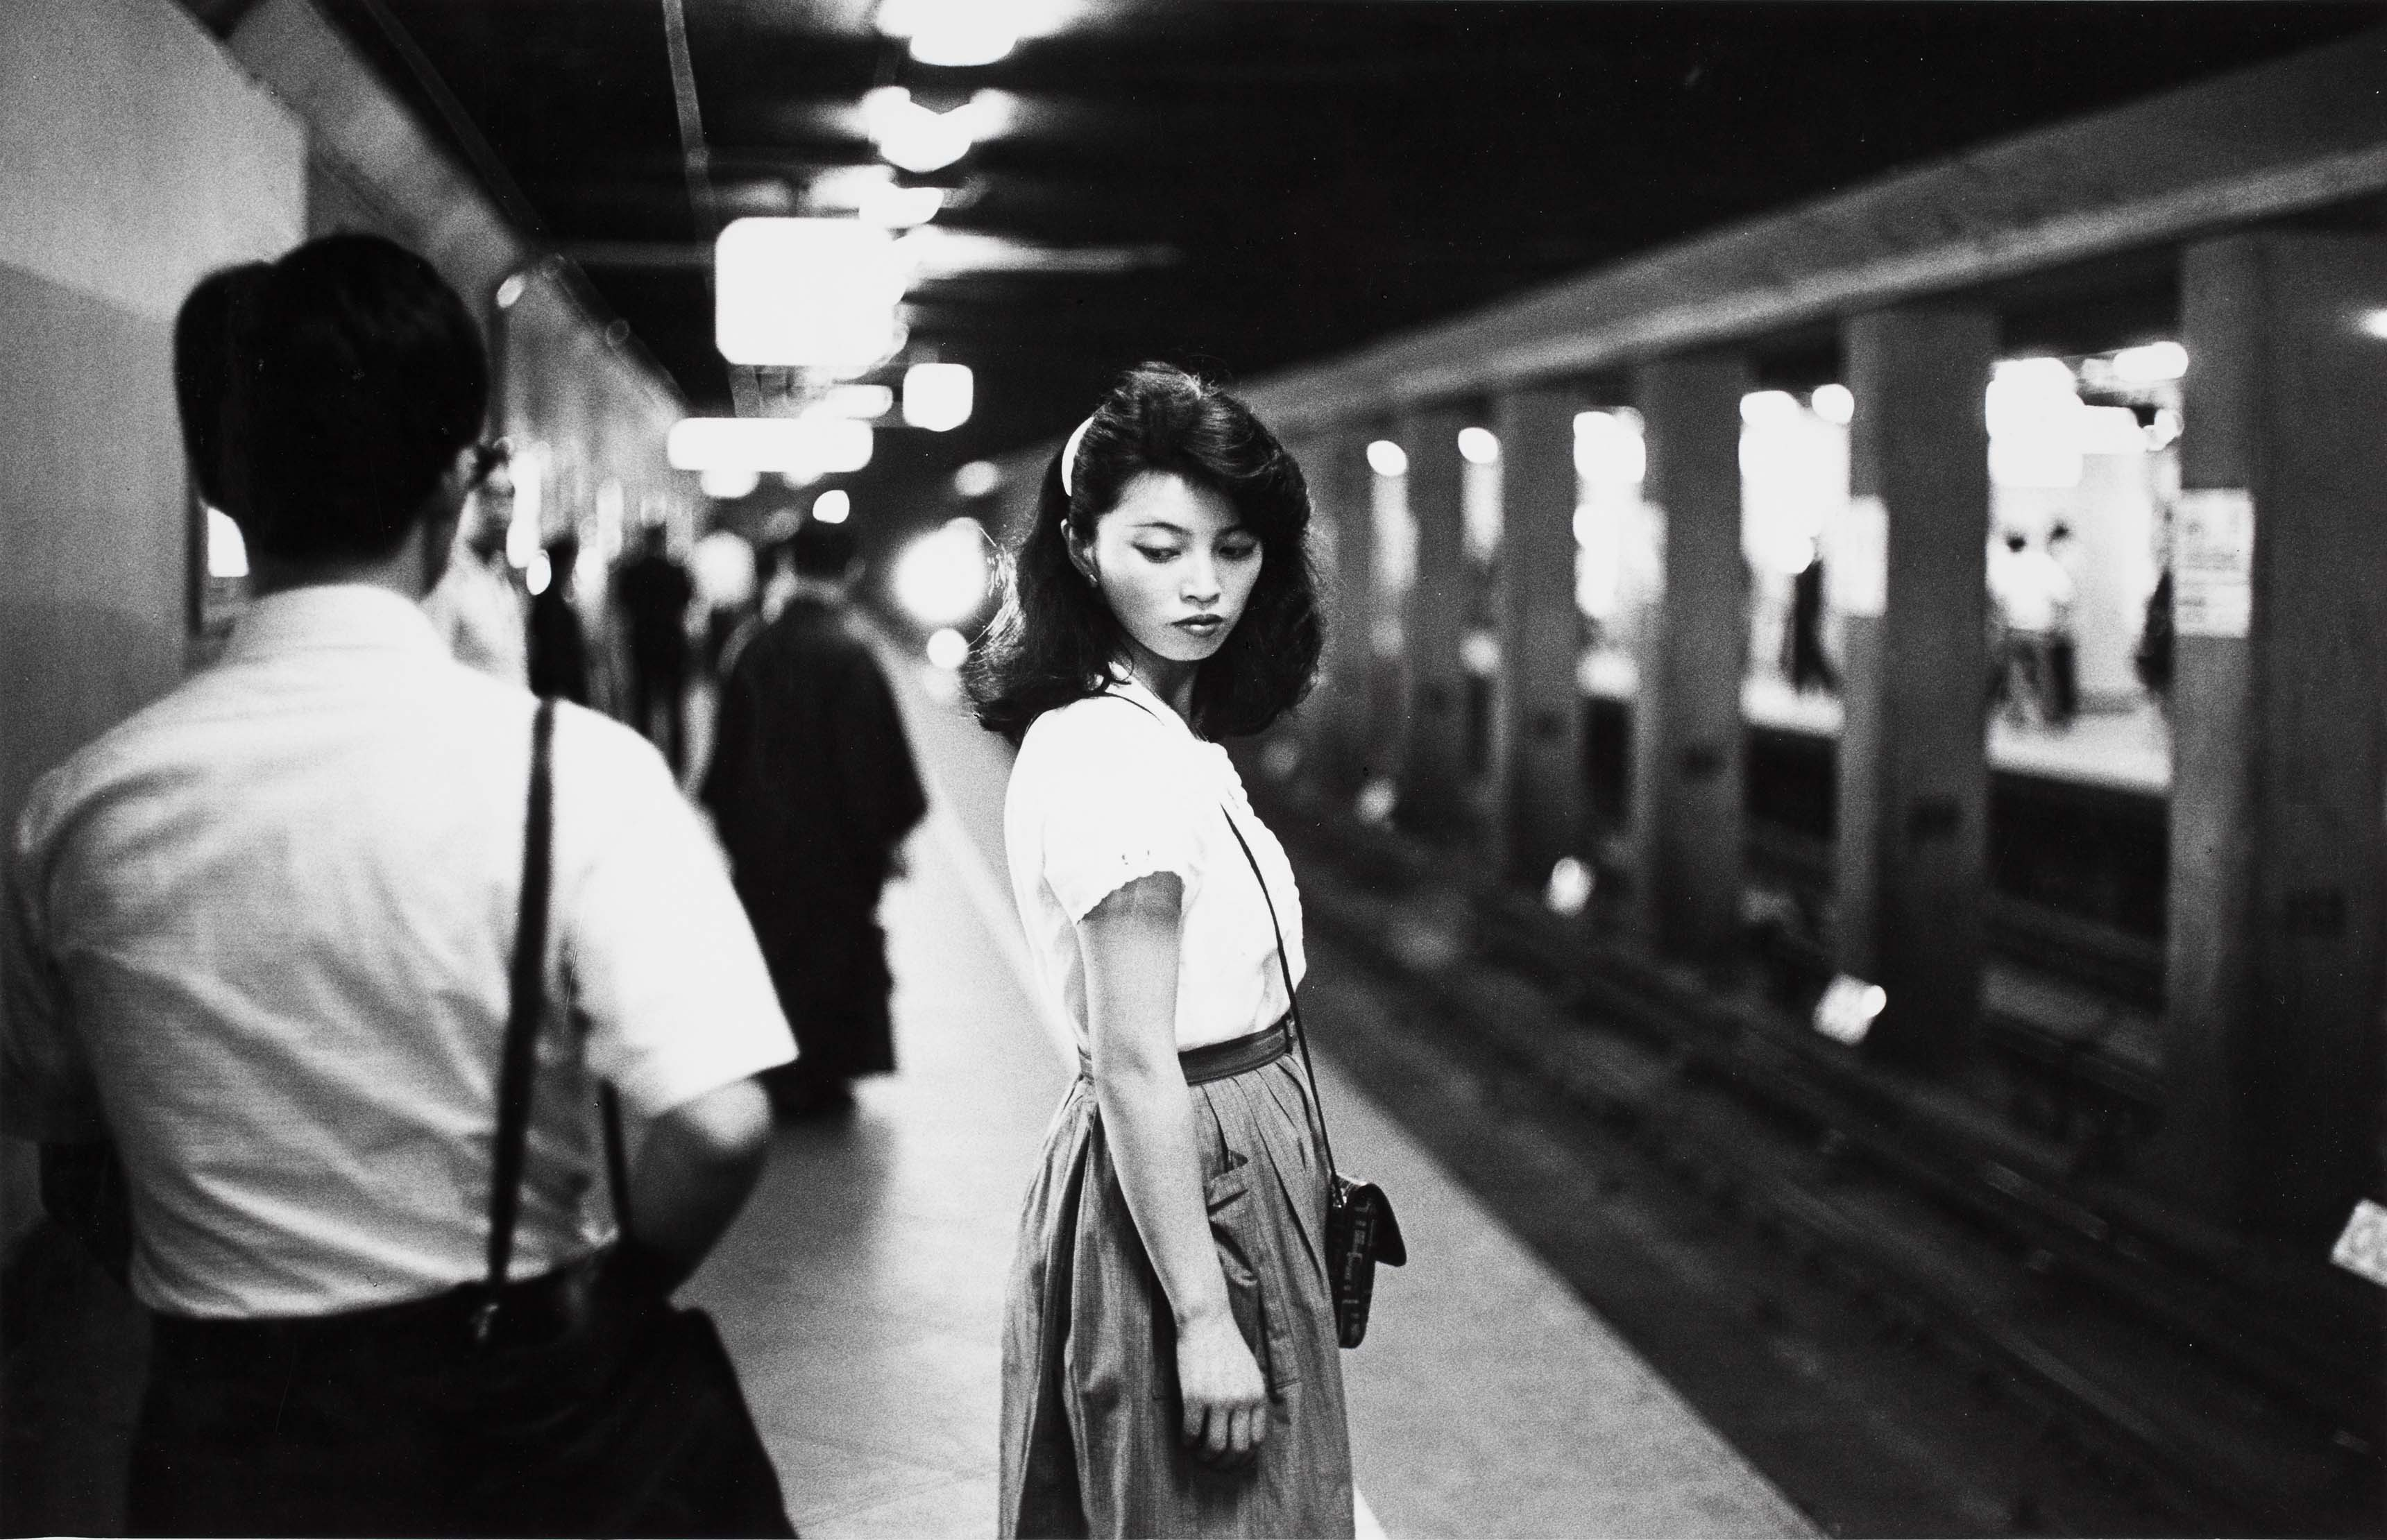 Ed van der Elsken, girl in the subway, Tokyo, 1981. Nederlands Fotomuseum Rotterdam © Ed van der Elsken / Collection Stedelijk Museum Amsterdam